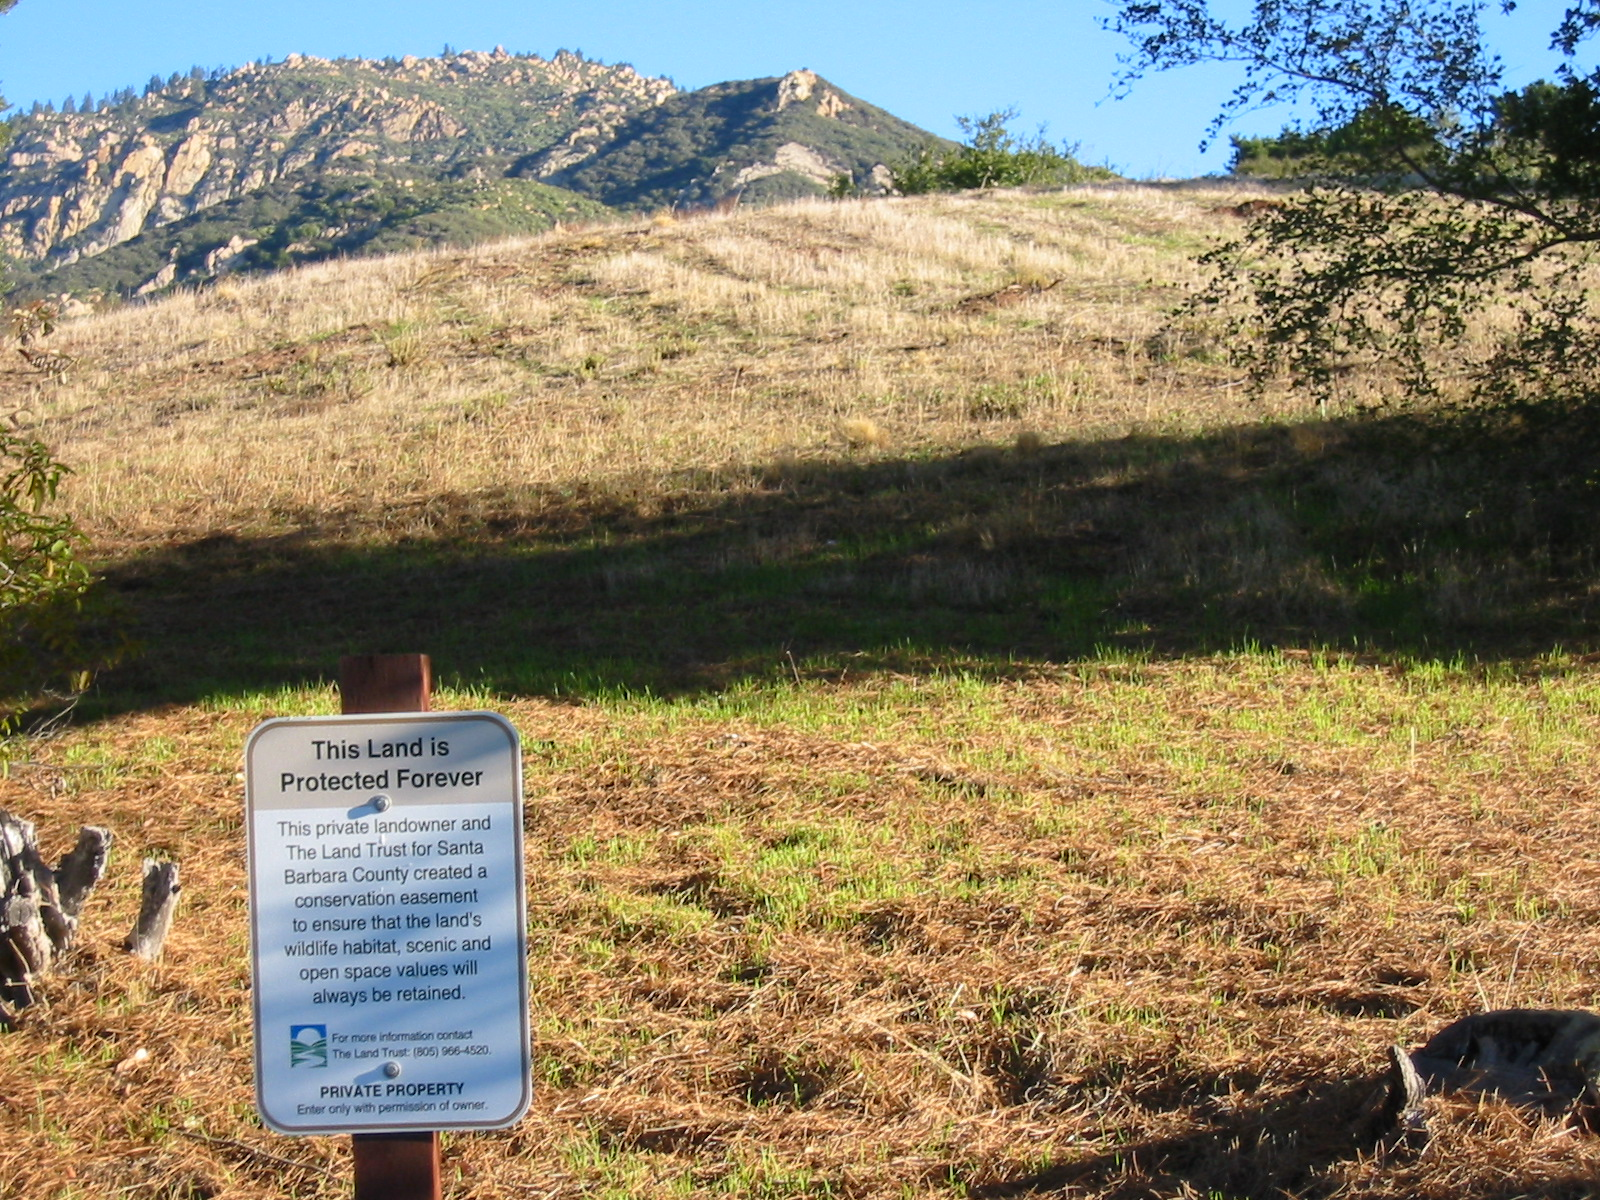 Mission Canyon Watershed